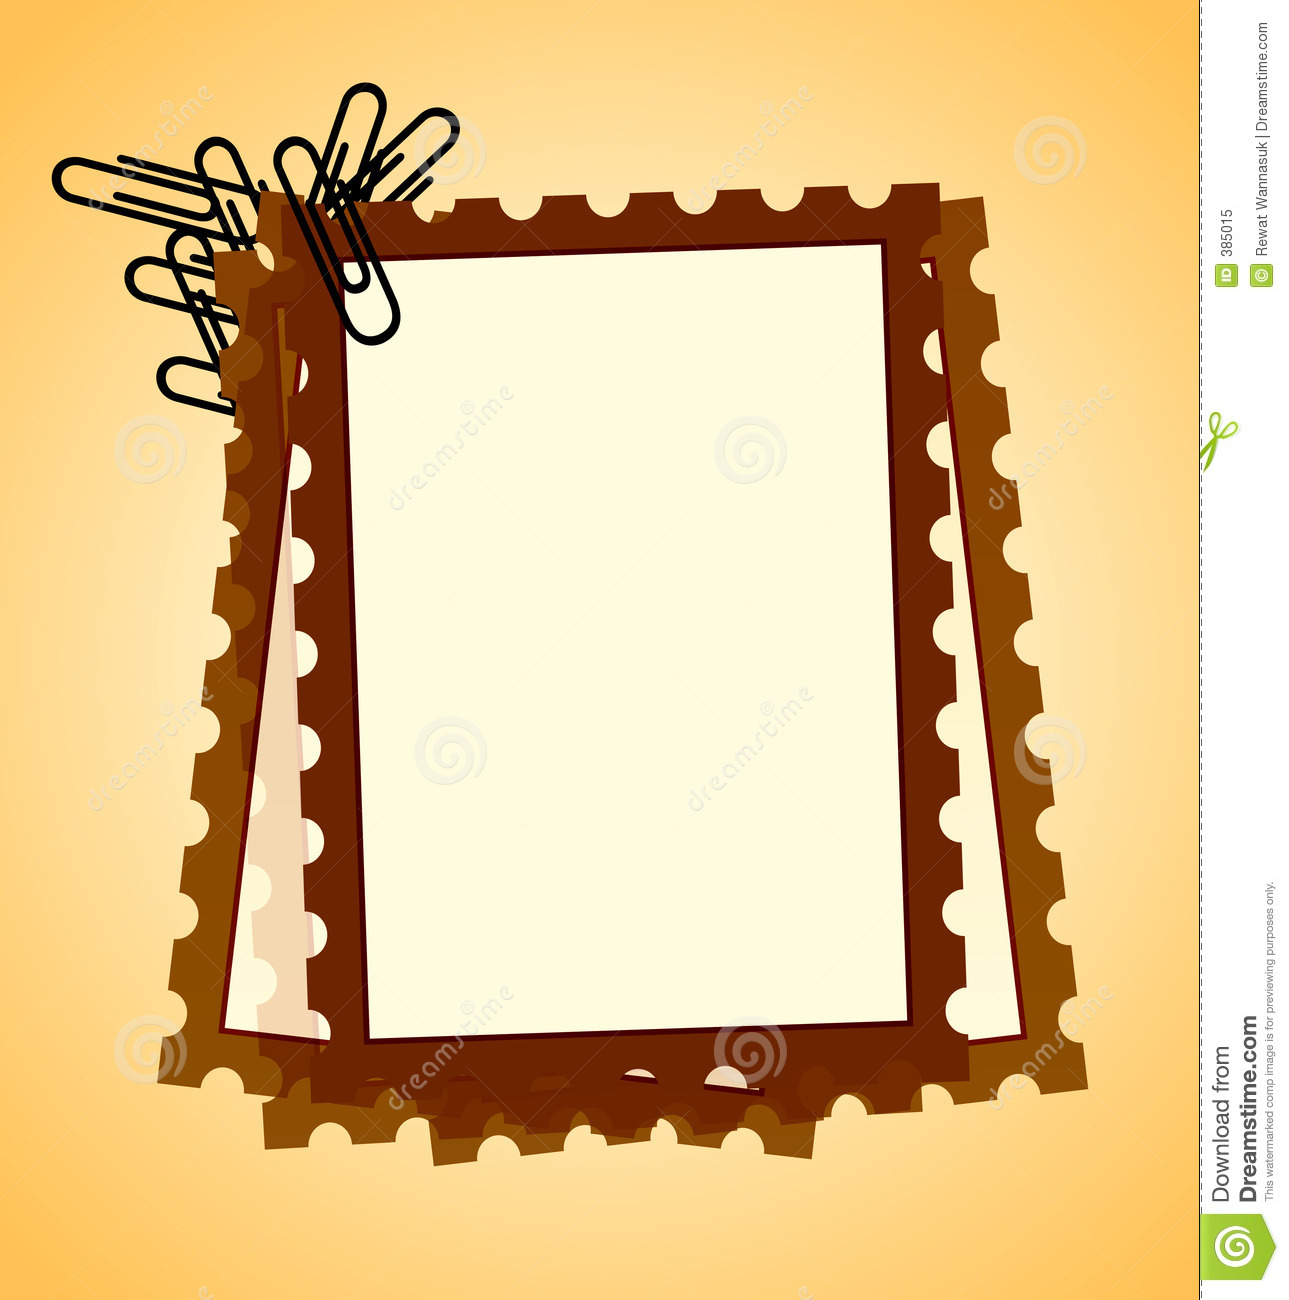 Bg Frame Designs Royalty Free Stock Photo Image 385015